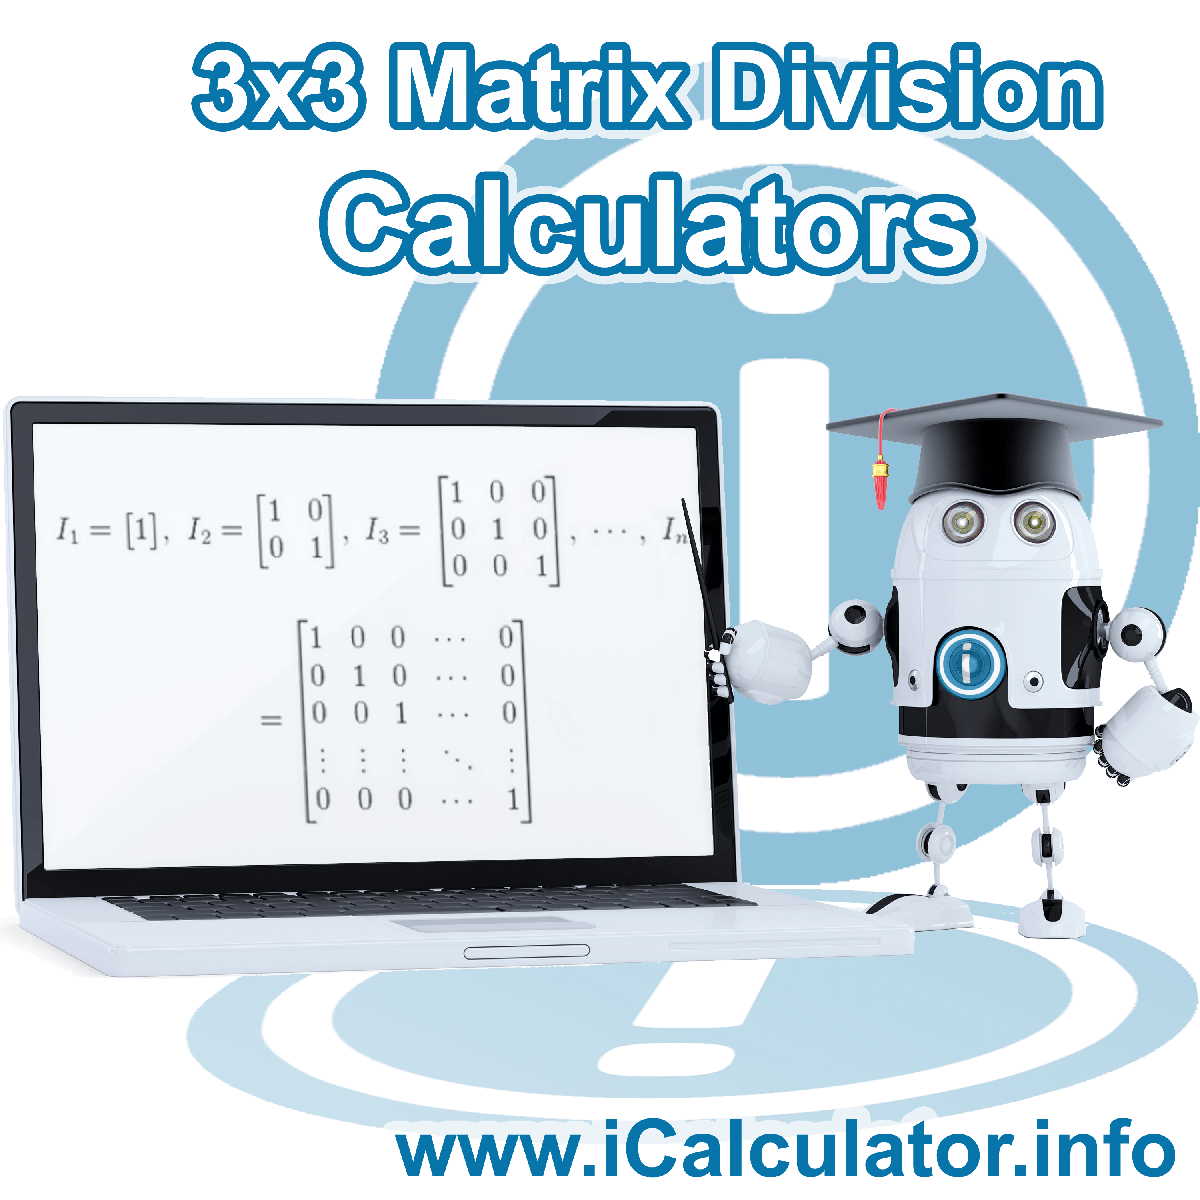 3x3 Matrix Division Calculator. This image shows the properties and Matrix formula for the 3x3 Matrix Division Calculator